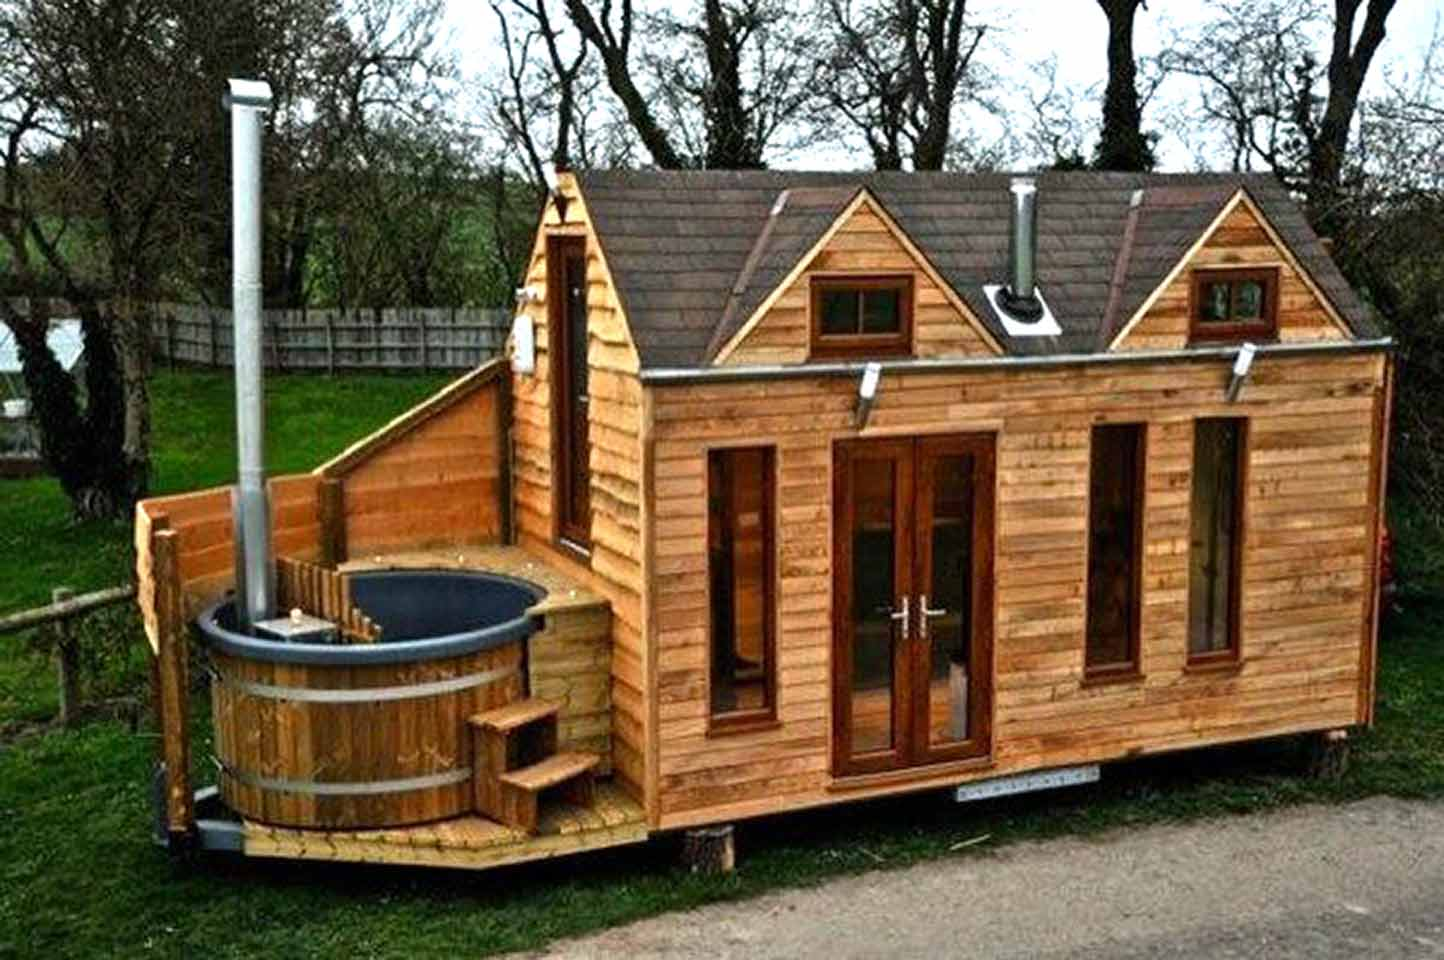 Tiny Cabin On Trailer With Outdoor Hot Tub Built In UK